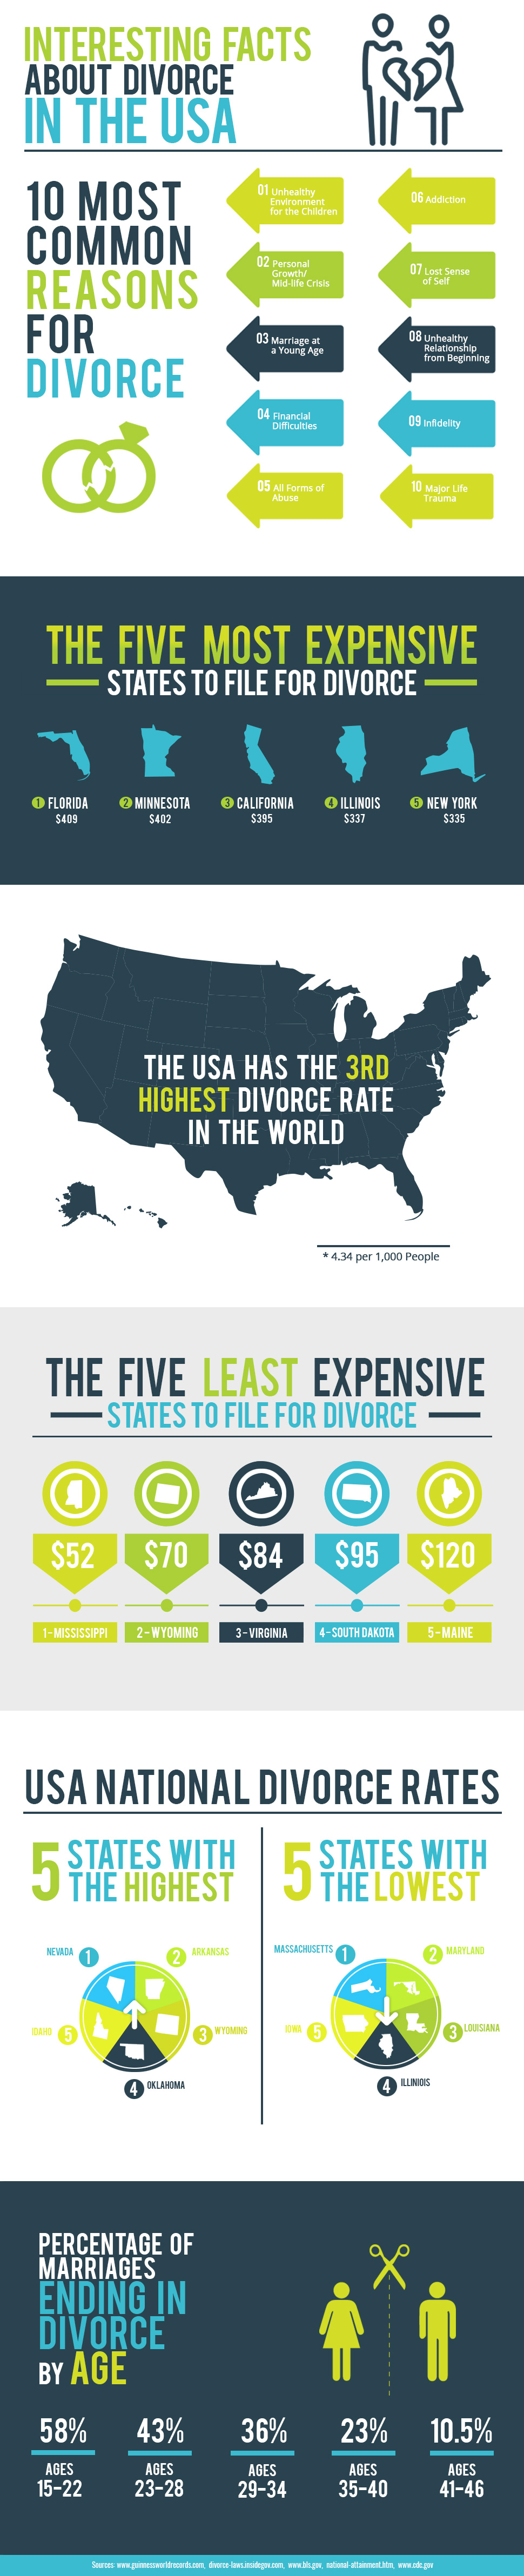 Interesting Facts About Divorce - Infographic